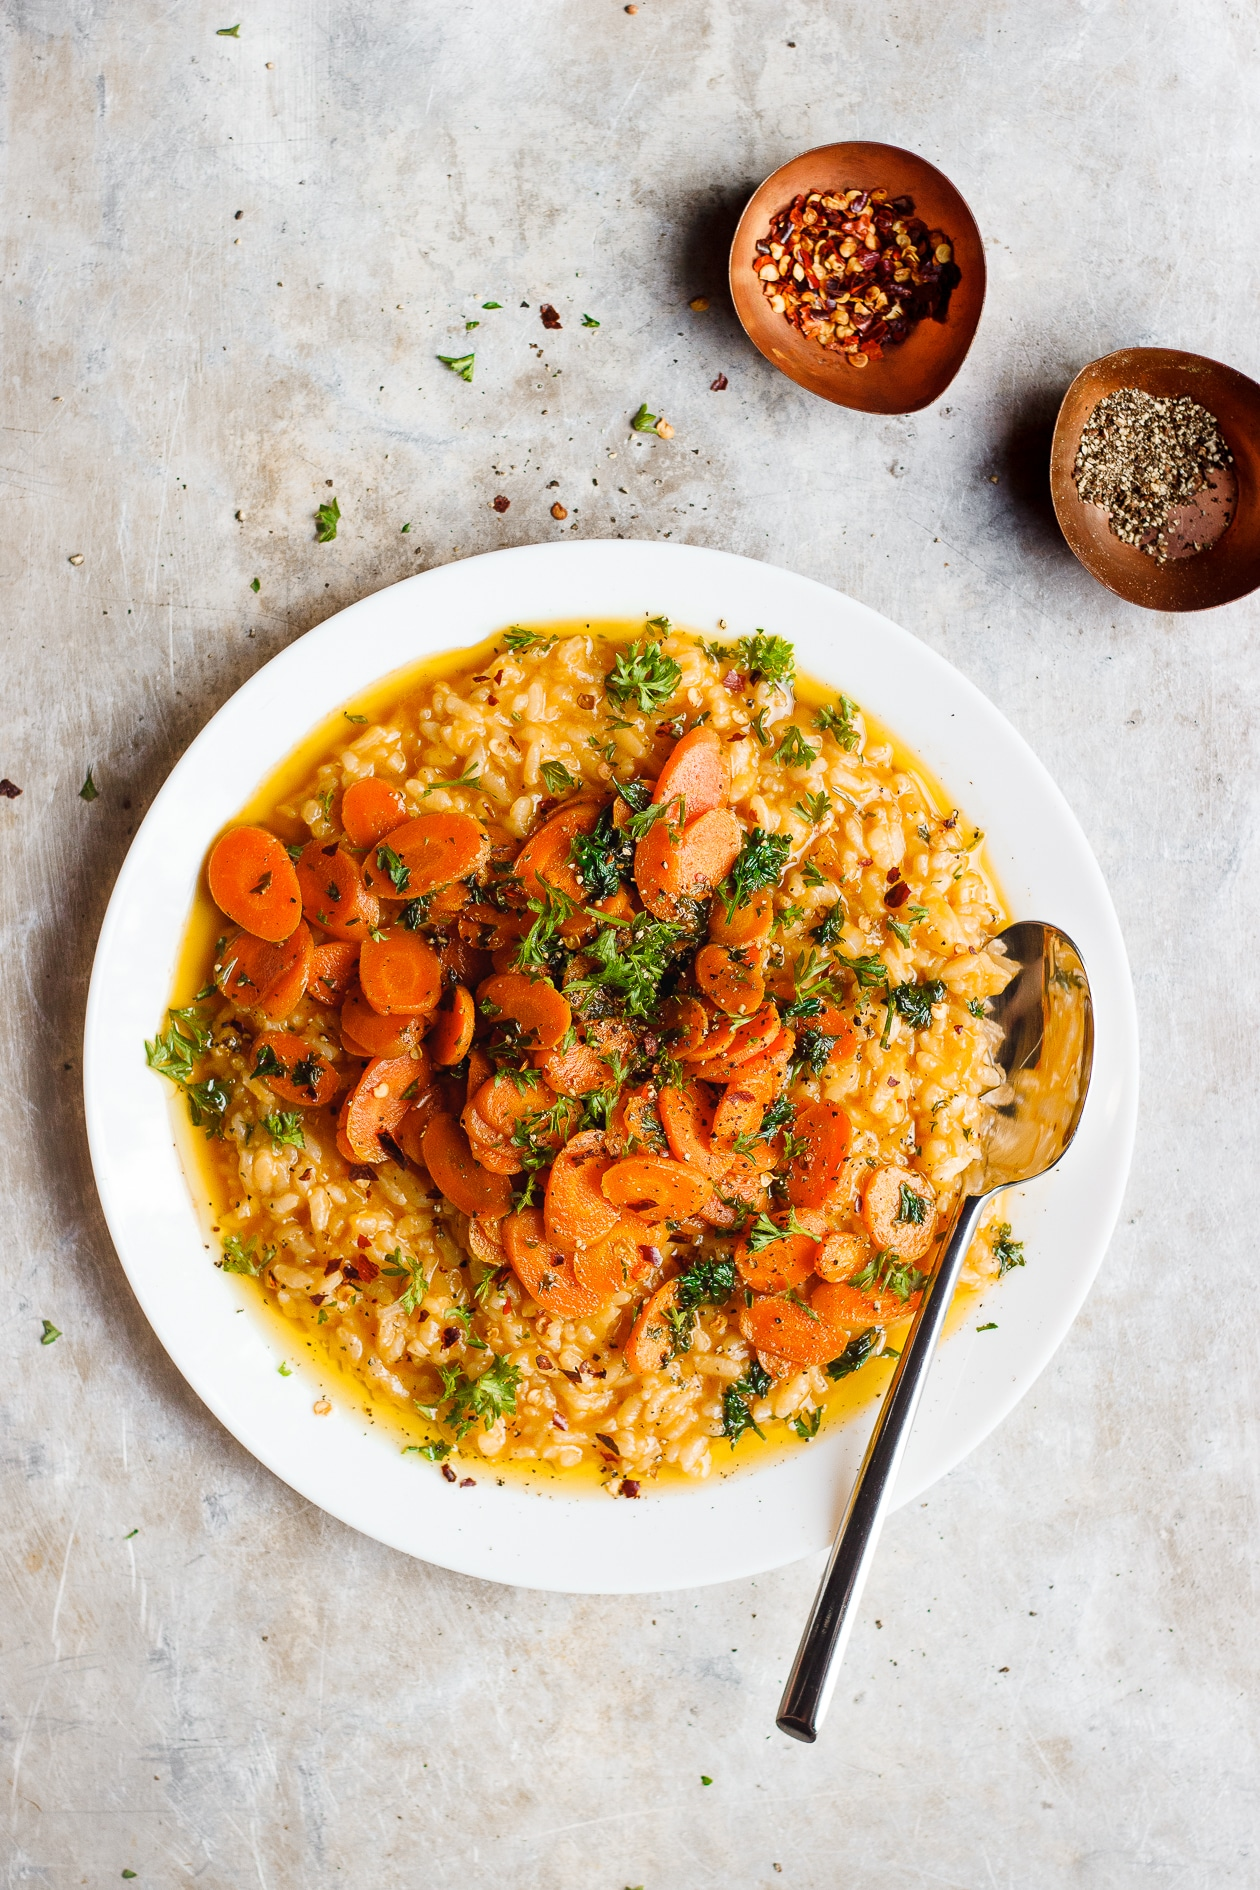 No-Stir Risotto with Herbed Caramelized Carrots | Cozy no-stir risotto with herbed caramelized carrots. A naturally gluten-free and vegan risotto recipe. Quick, easy, stir-free risotto.